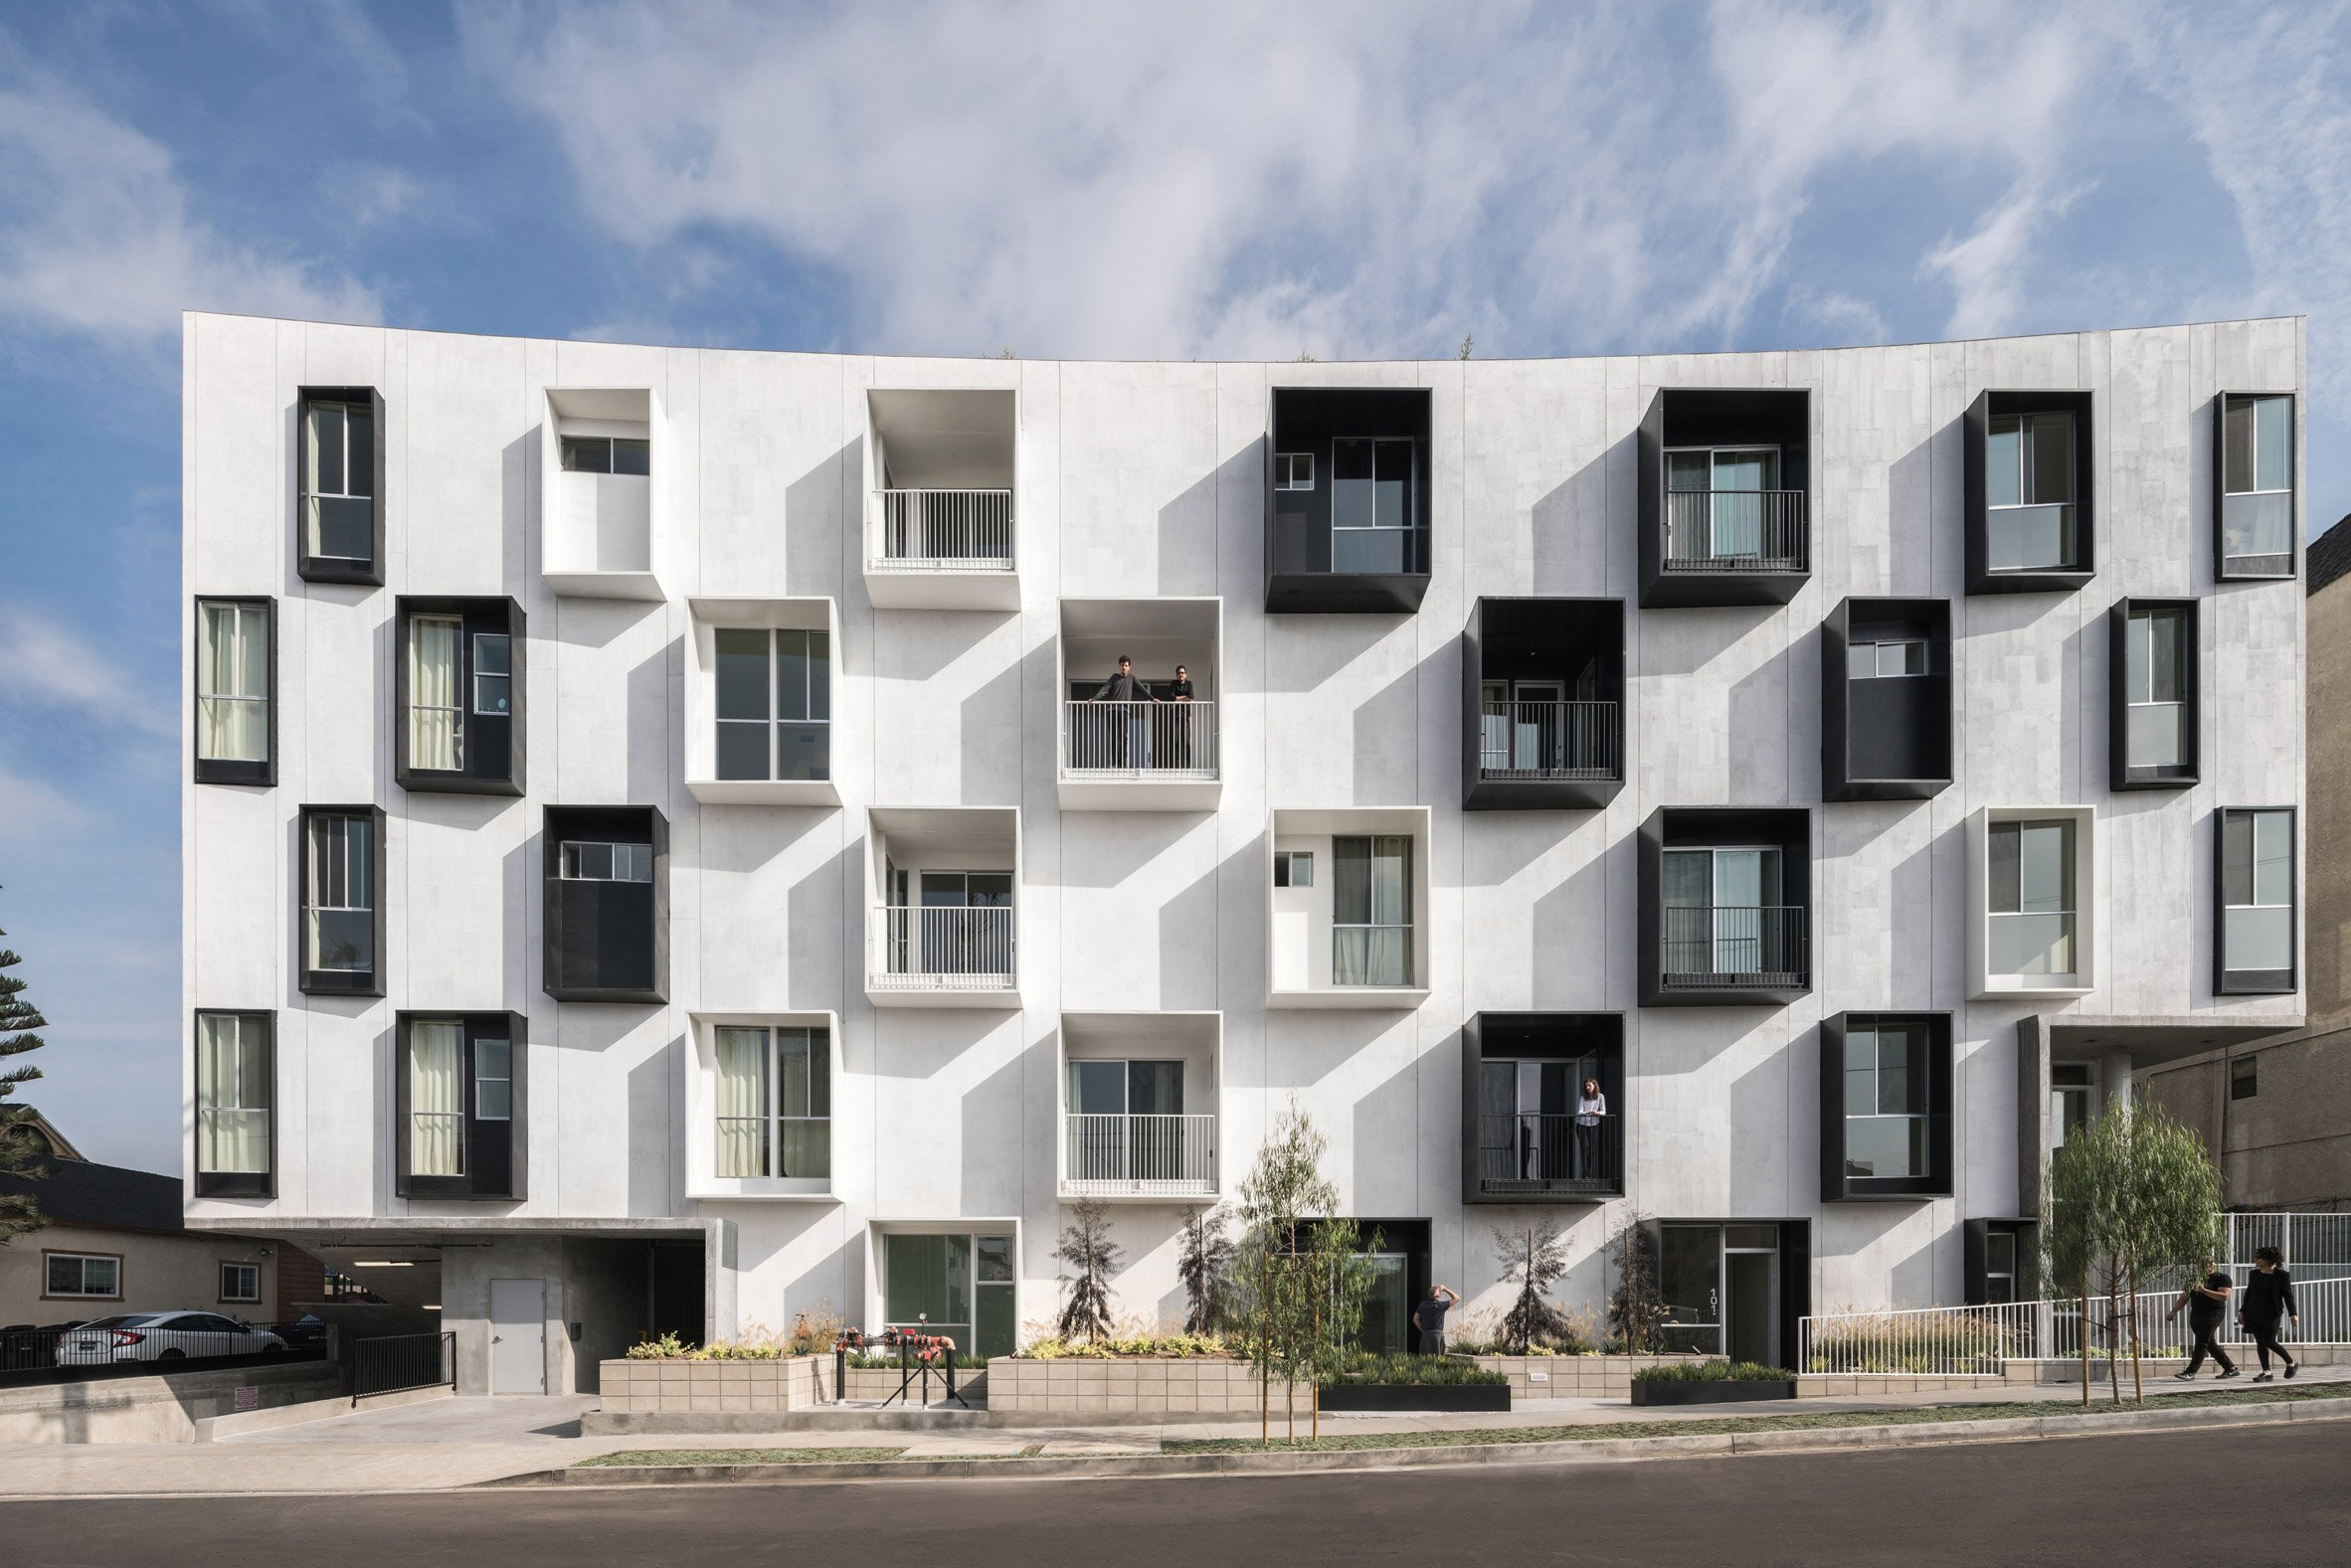 LOHA creates housing block with curvilinear courtyard in LA's Koreatown